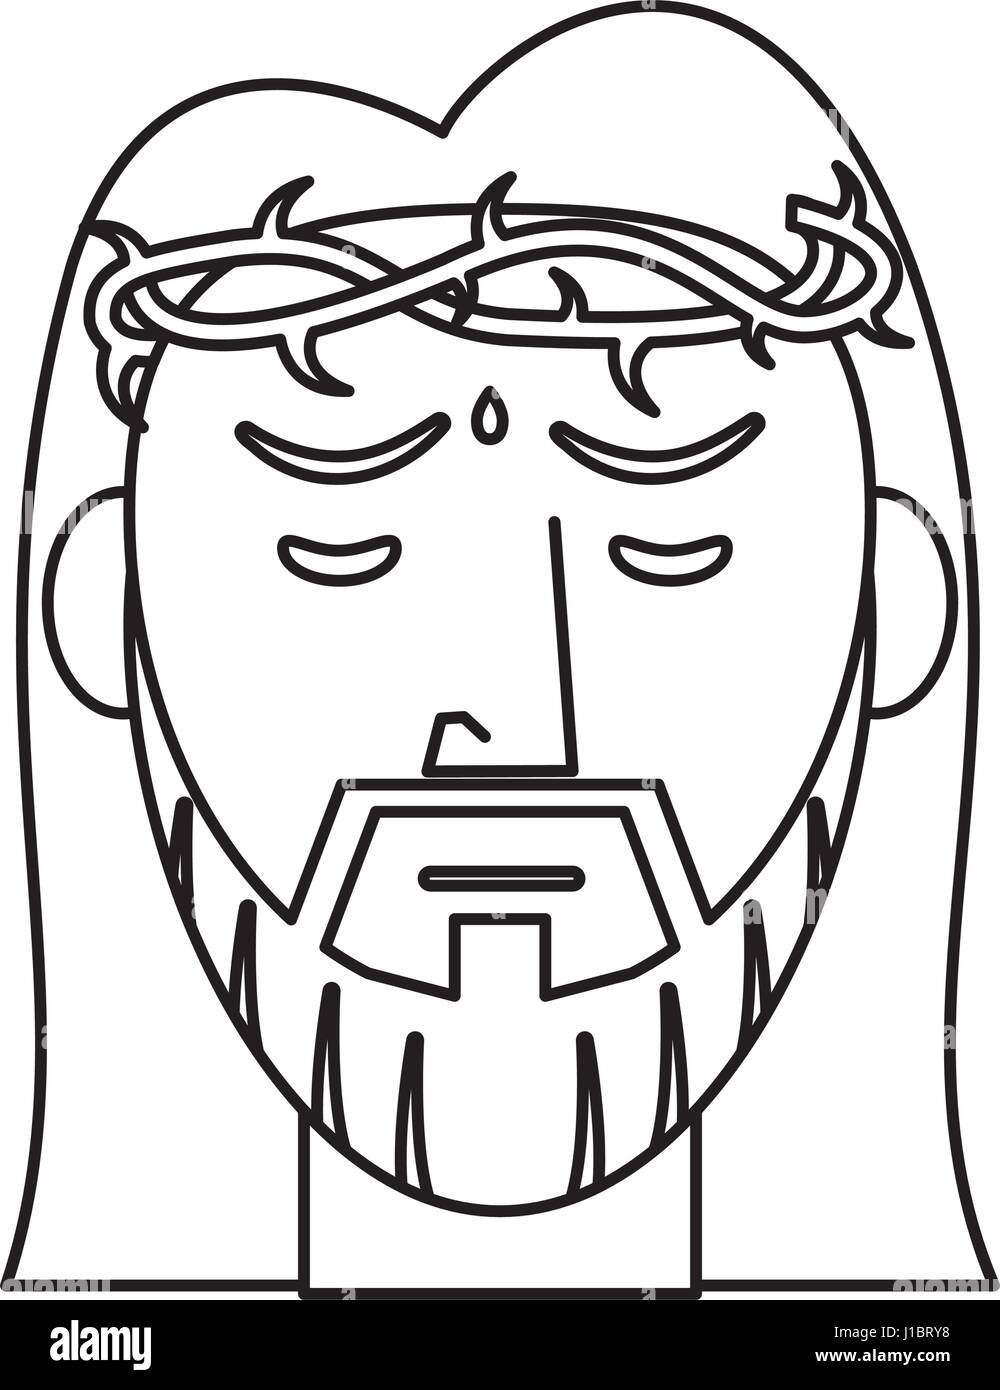 Jesus Christ Crown Of Thorns Outline